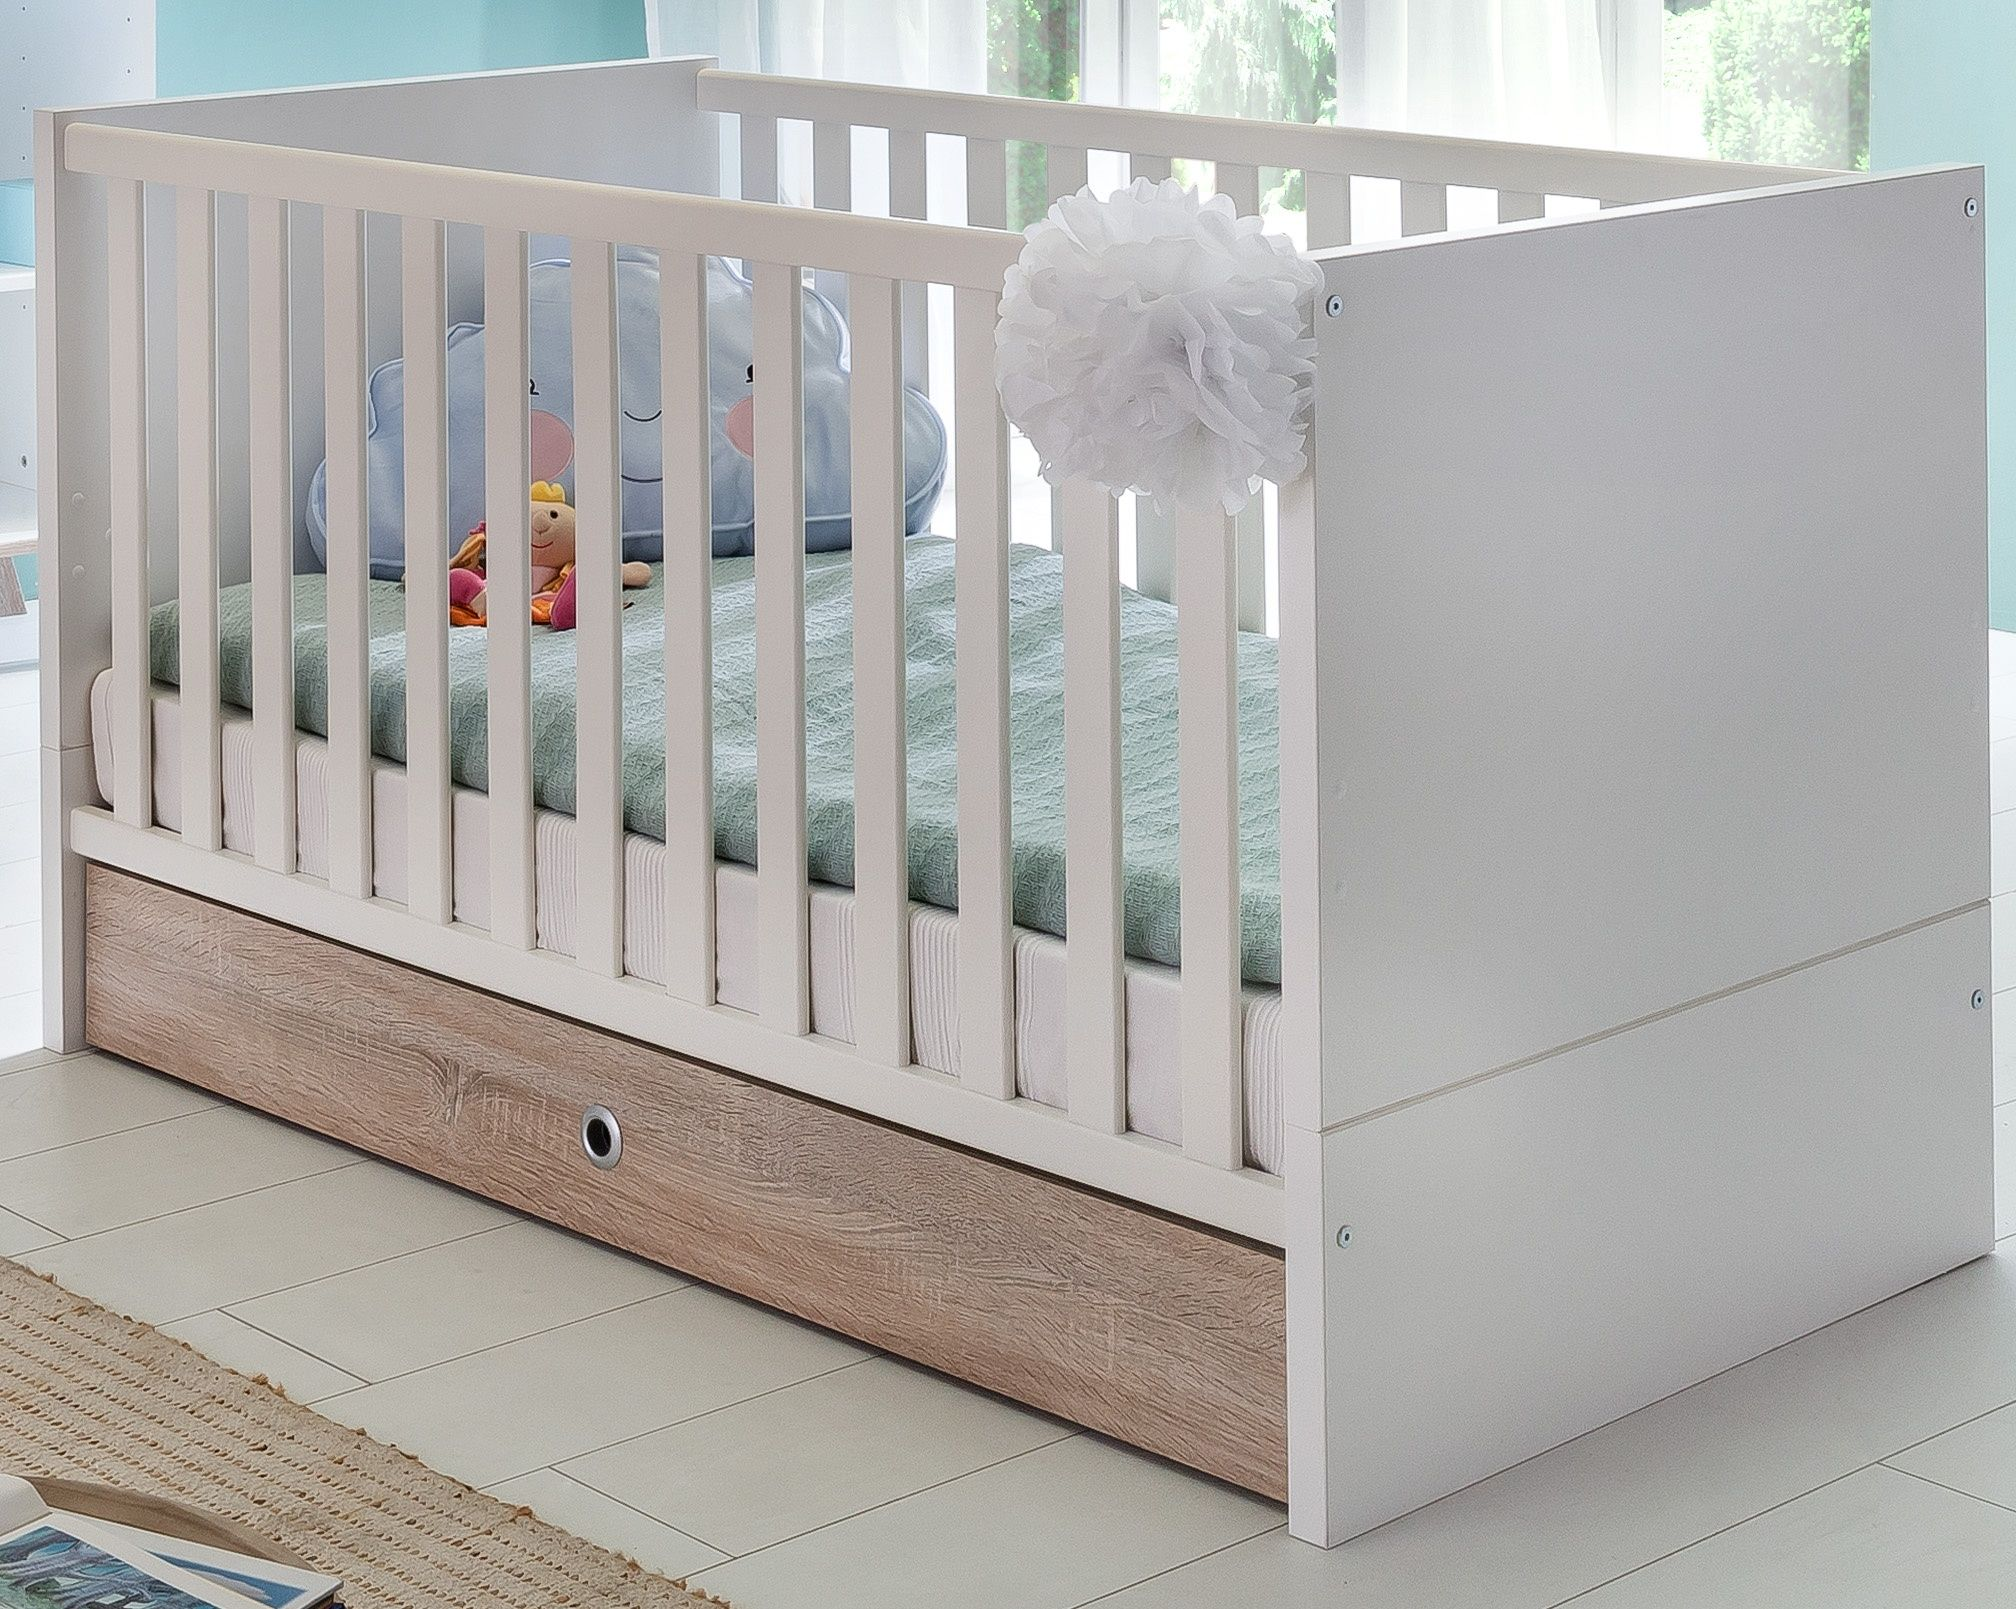 Babybett Weiss Woody 132-01699 Alpinweiss Holz Neutral Jetzt bestellen unter: https://moebel.ladendirekt.de/kinderzimmer/betten/kinderbetten/?uid=2572404a-dab1-55bb-acc6-d8245b1320b4&utm_source=pinterest&utm_medium=pin&utm_campaign=boards #kinderzimmer #kinderbetten #betten